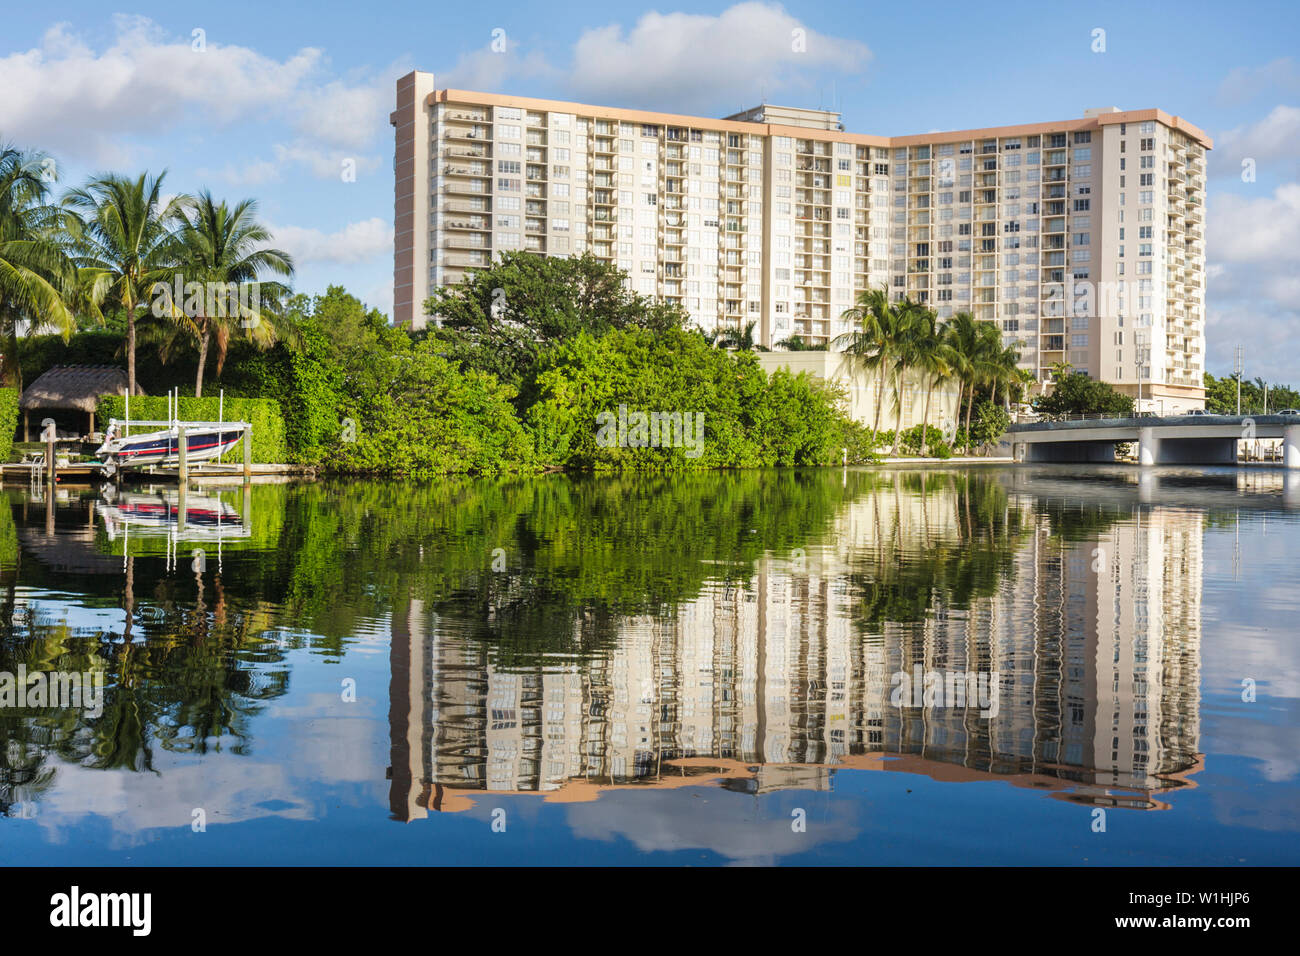 Miami Beach Florida 41st Street Bridge Indian Creek waterway high-rise building condominium water reflection shore dry-dock boat - Stock Image